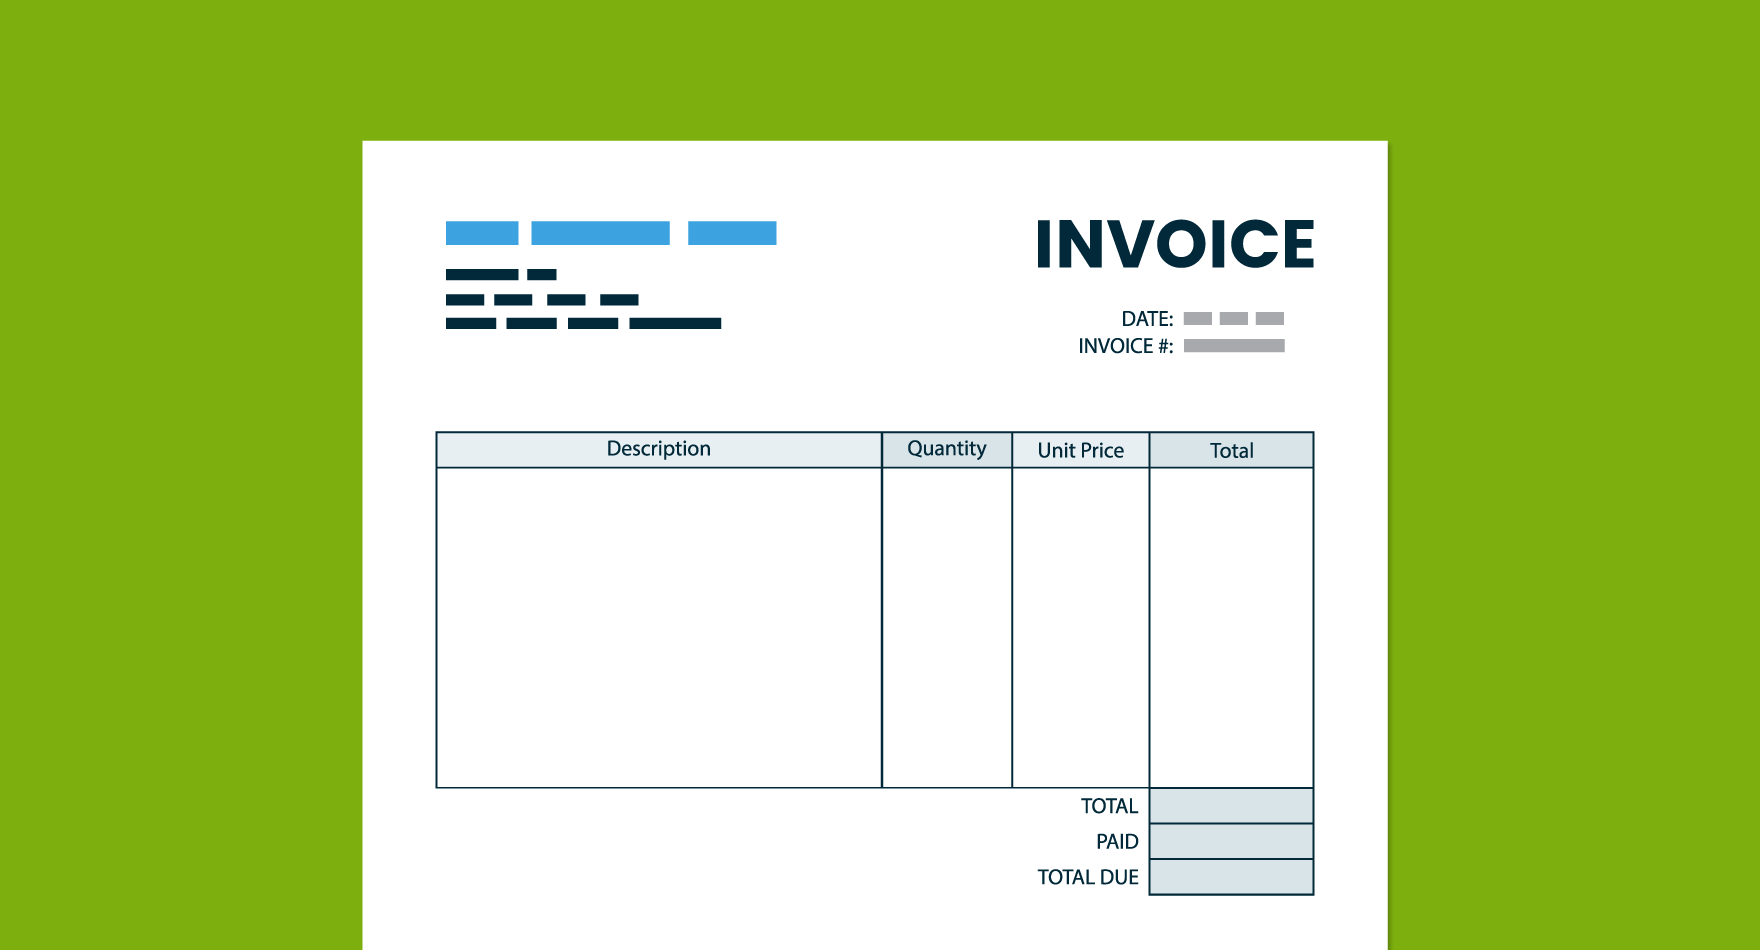 back to basics invoices and the invoicing process - Invocie